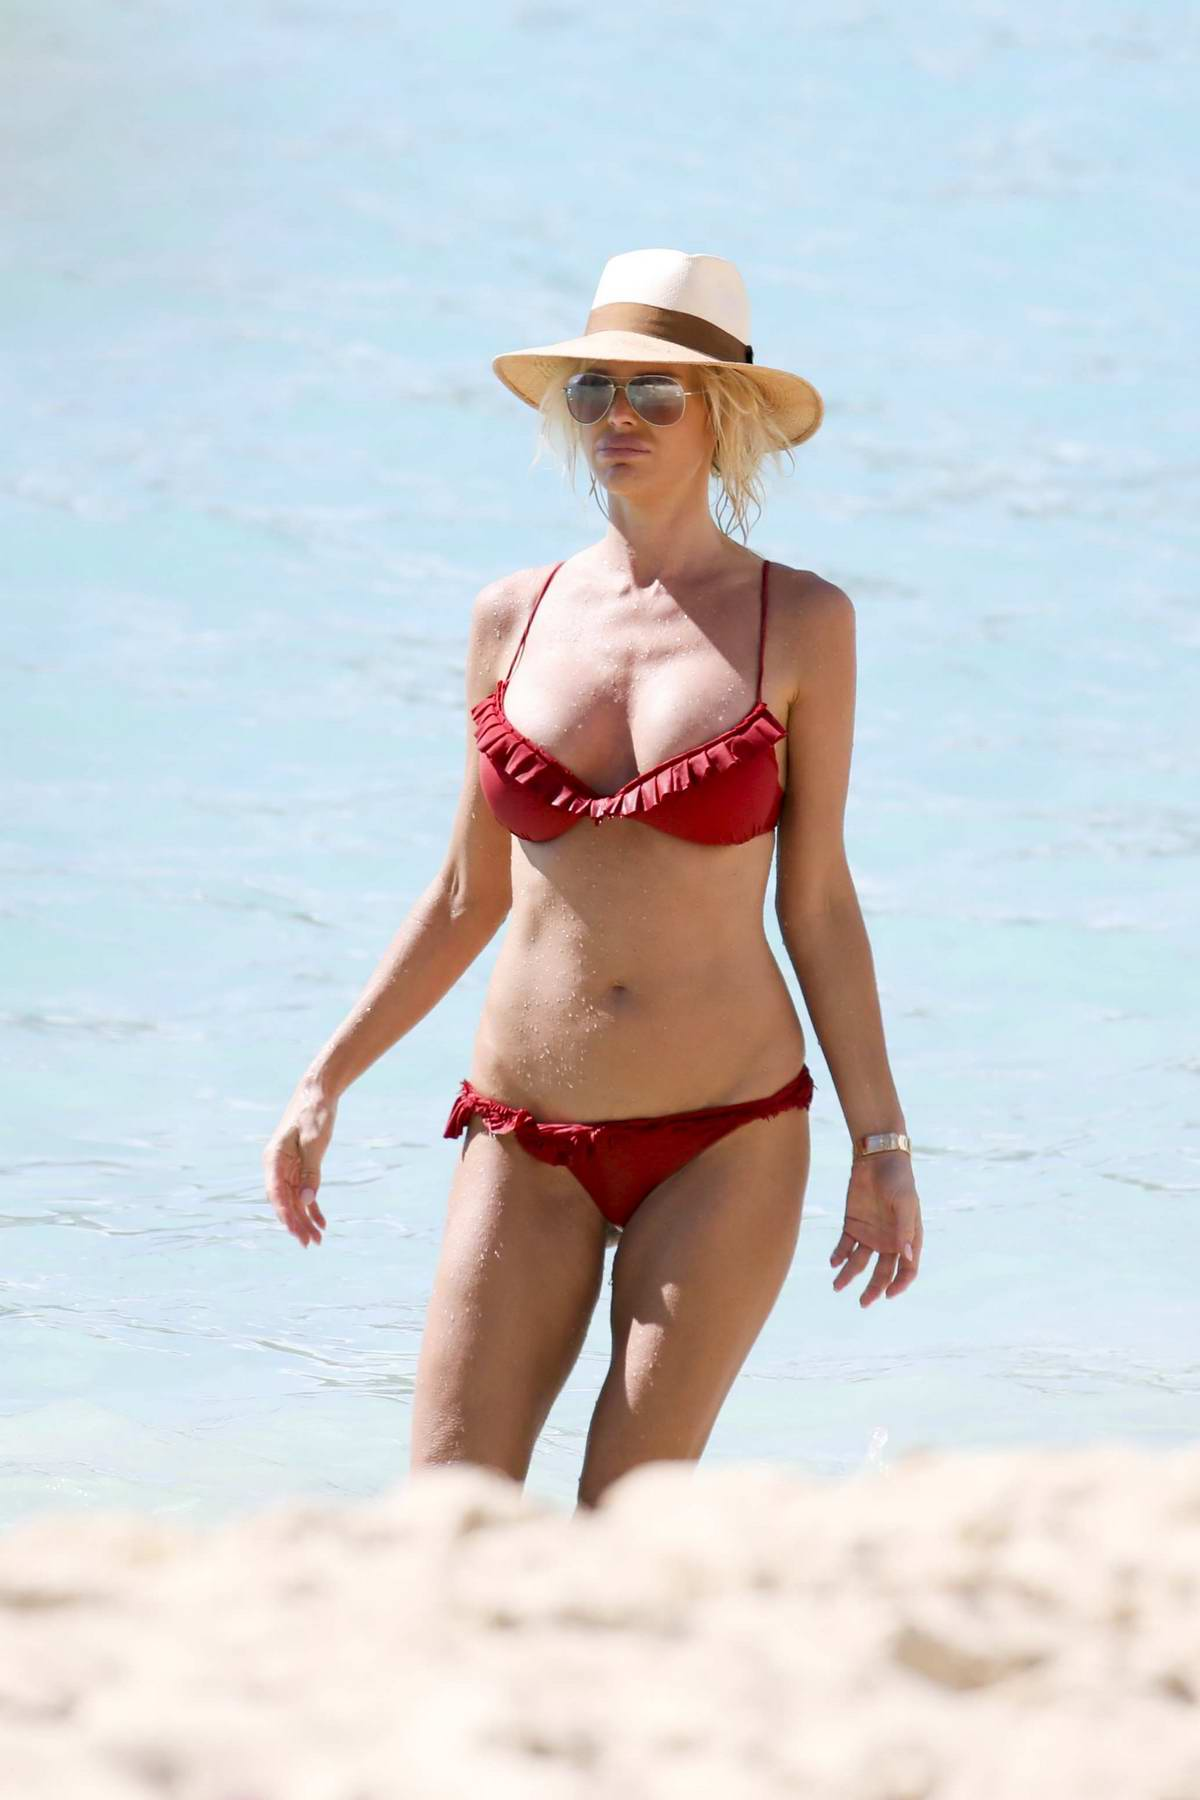 Victoria Silvstedt spotted in a red bikini while relaxing on the beach in St Barts, France